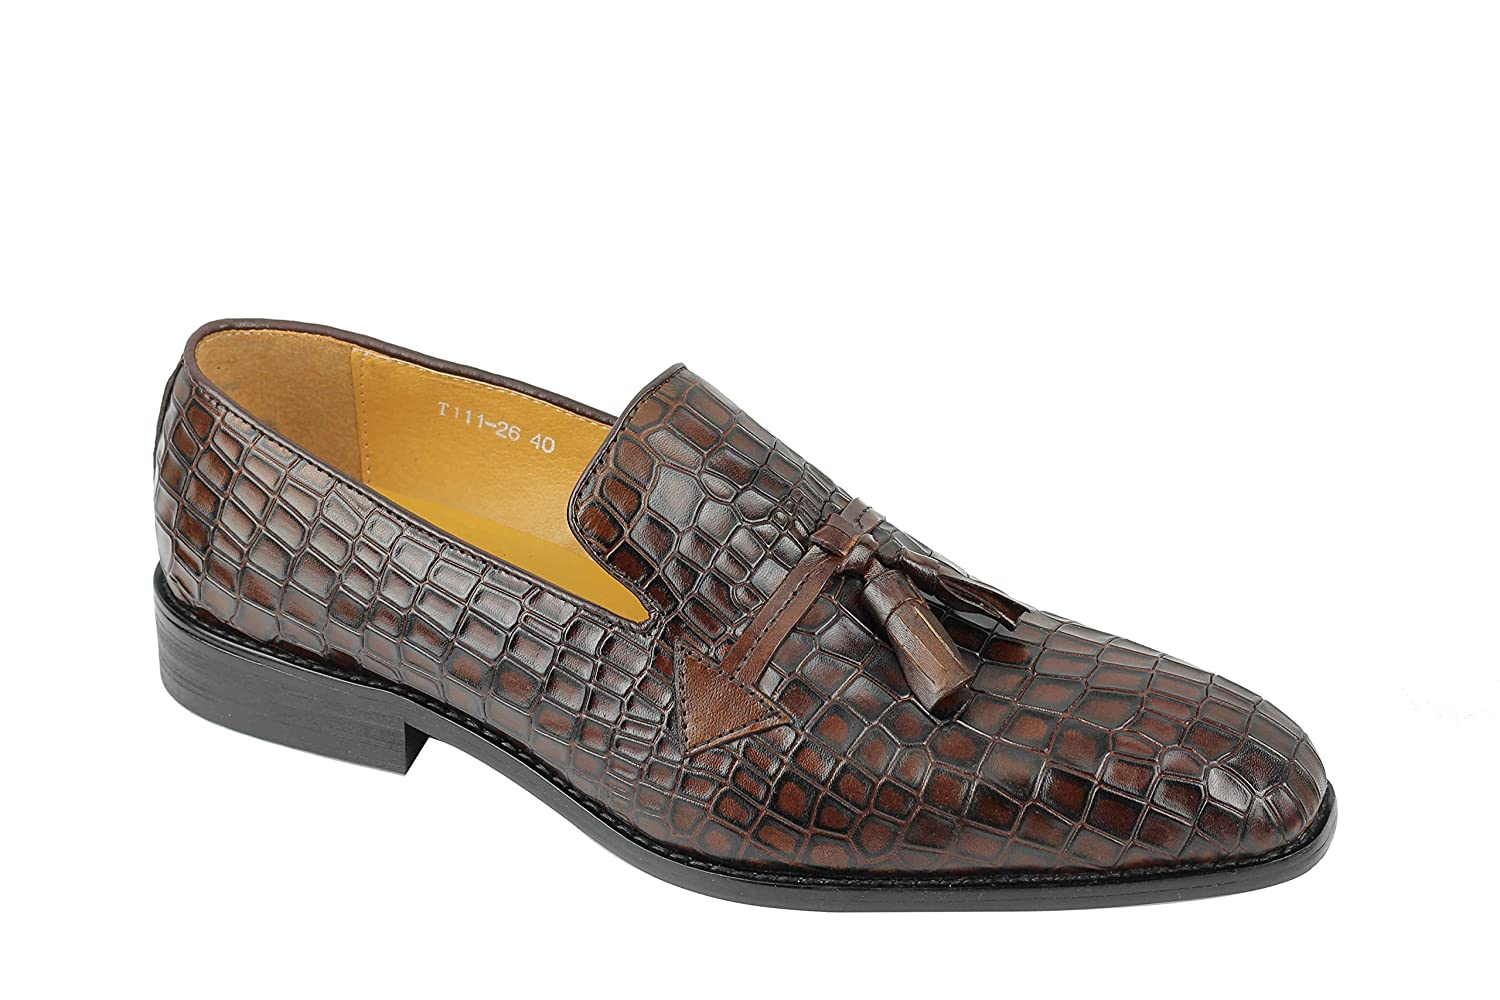 fcc8a481d76 Xposed Mens Vintage Brown Real Leather Tassel Loafers Polished Crocodile  Print Formal Slip on Shoes  Amazon.co.uk  Shoes   Bags